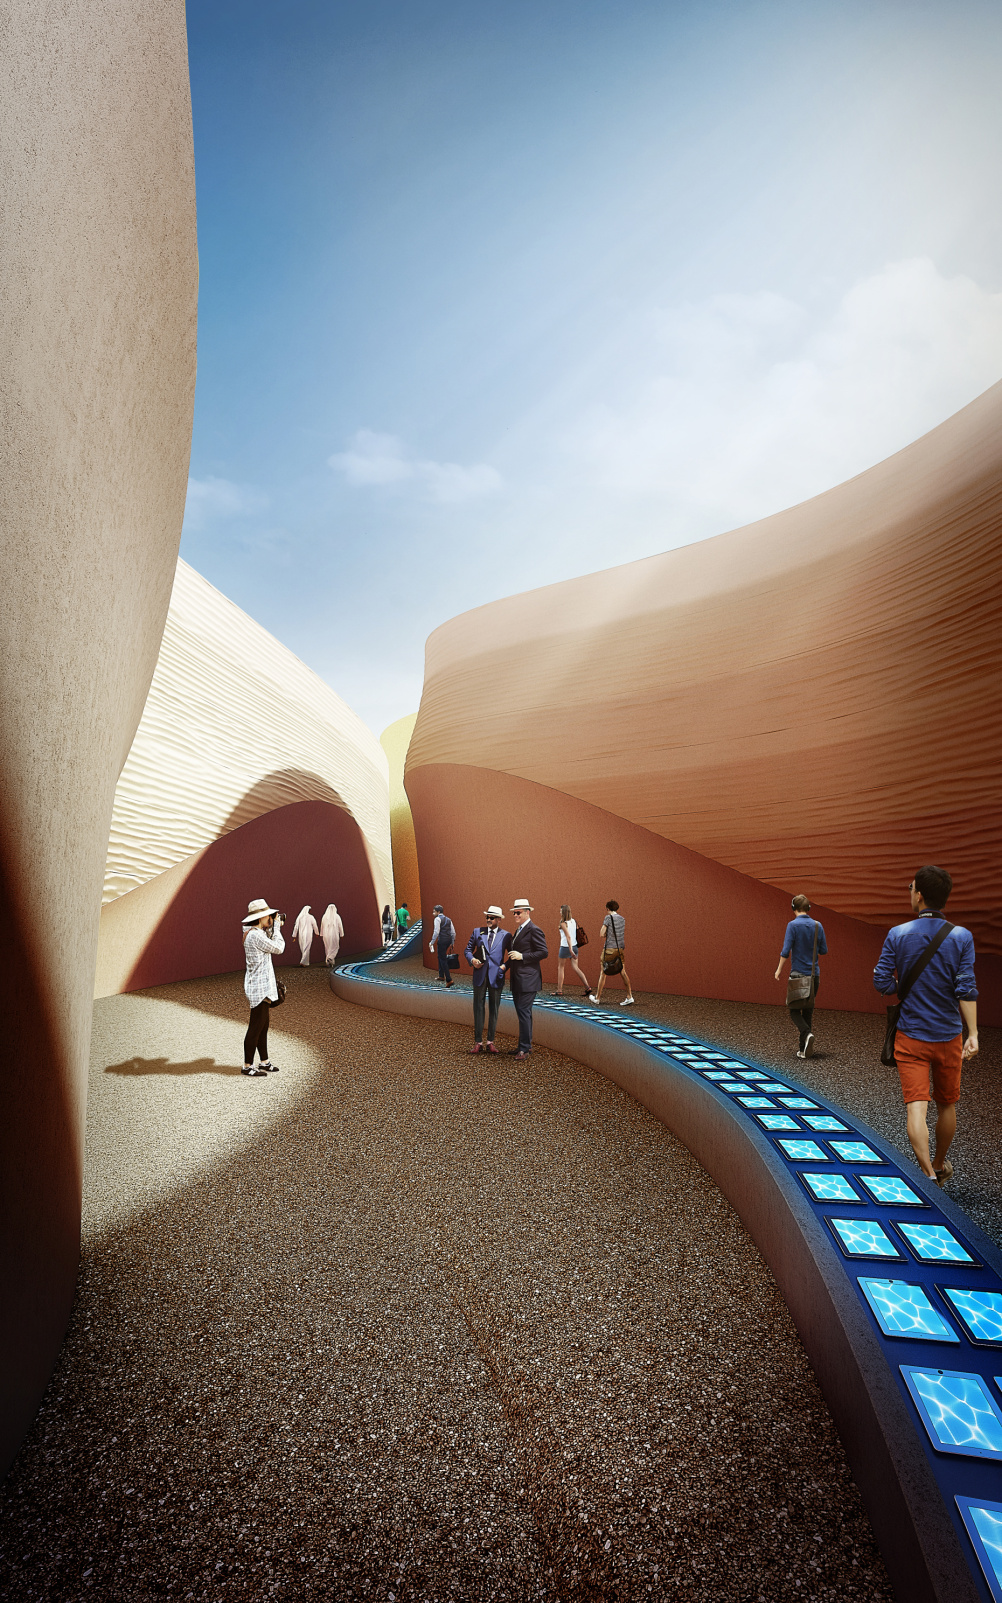 The walls aim to represent sand